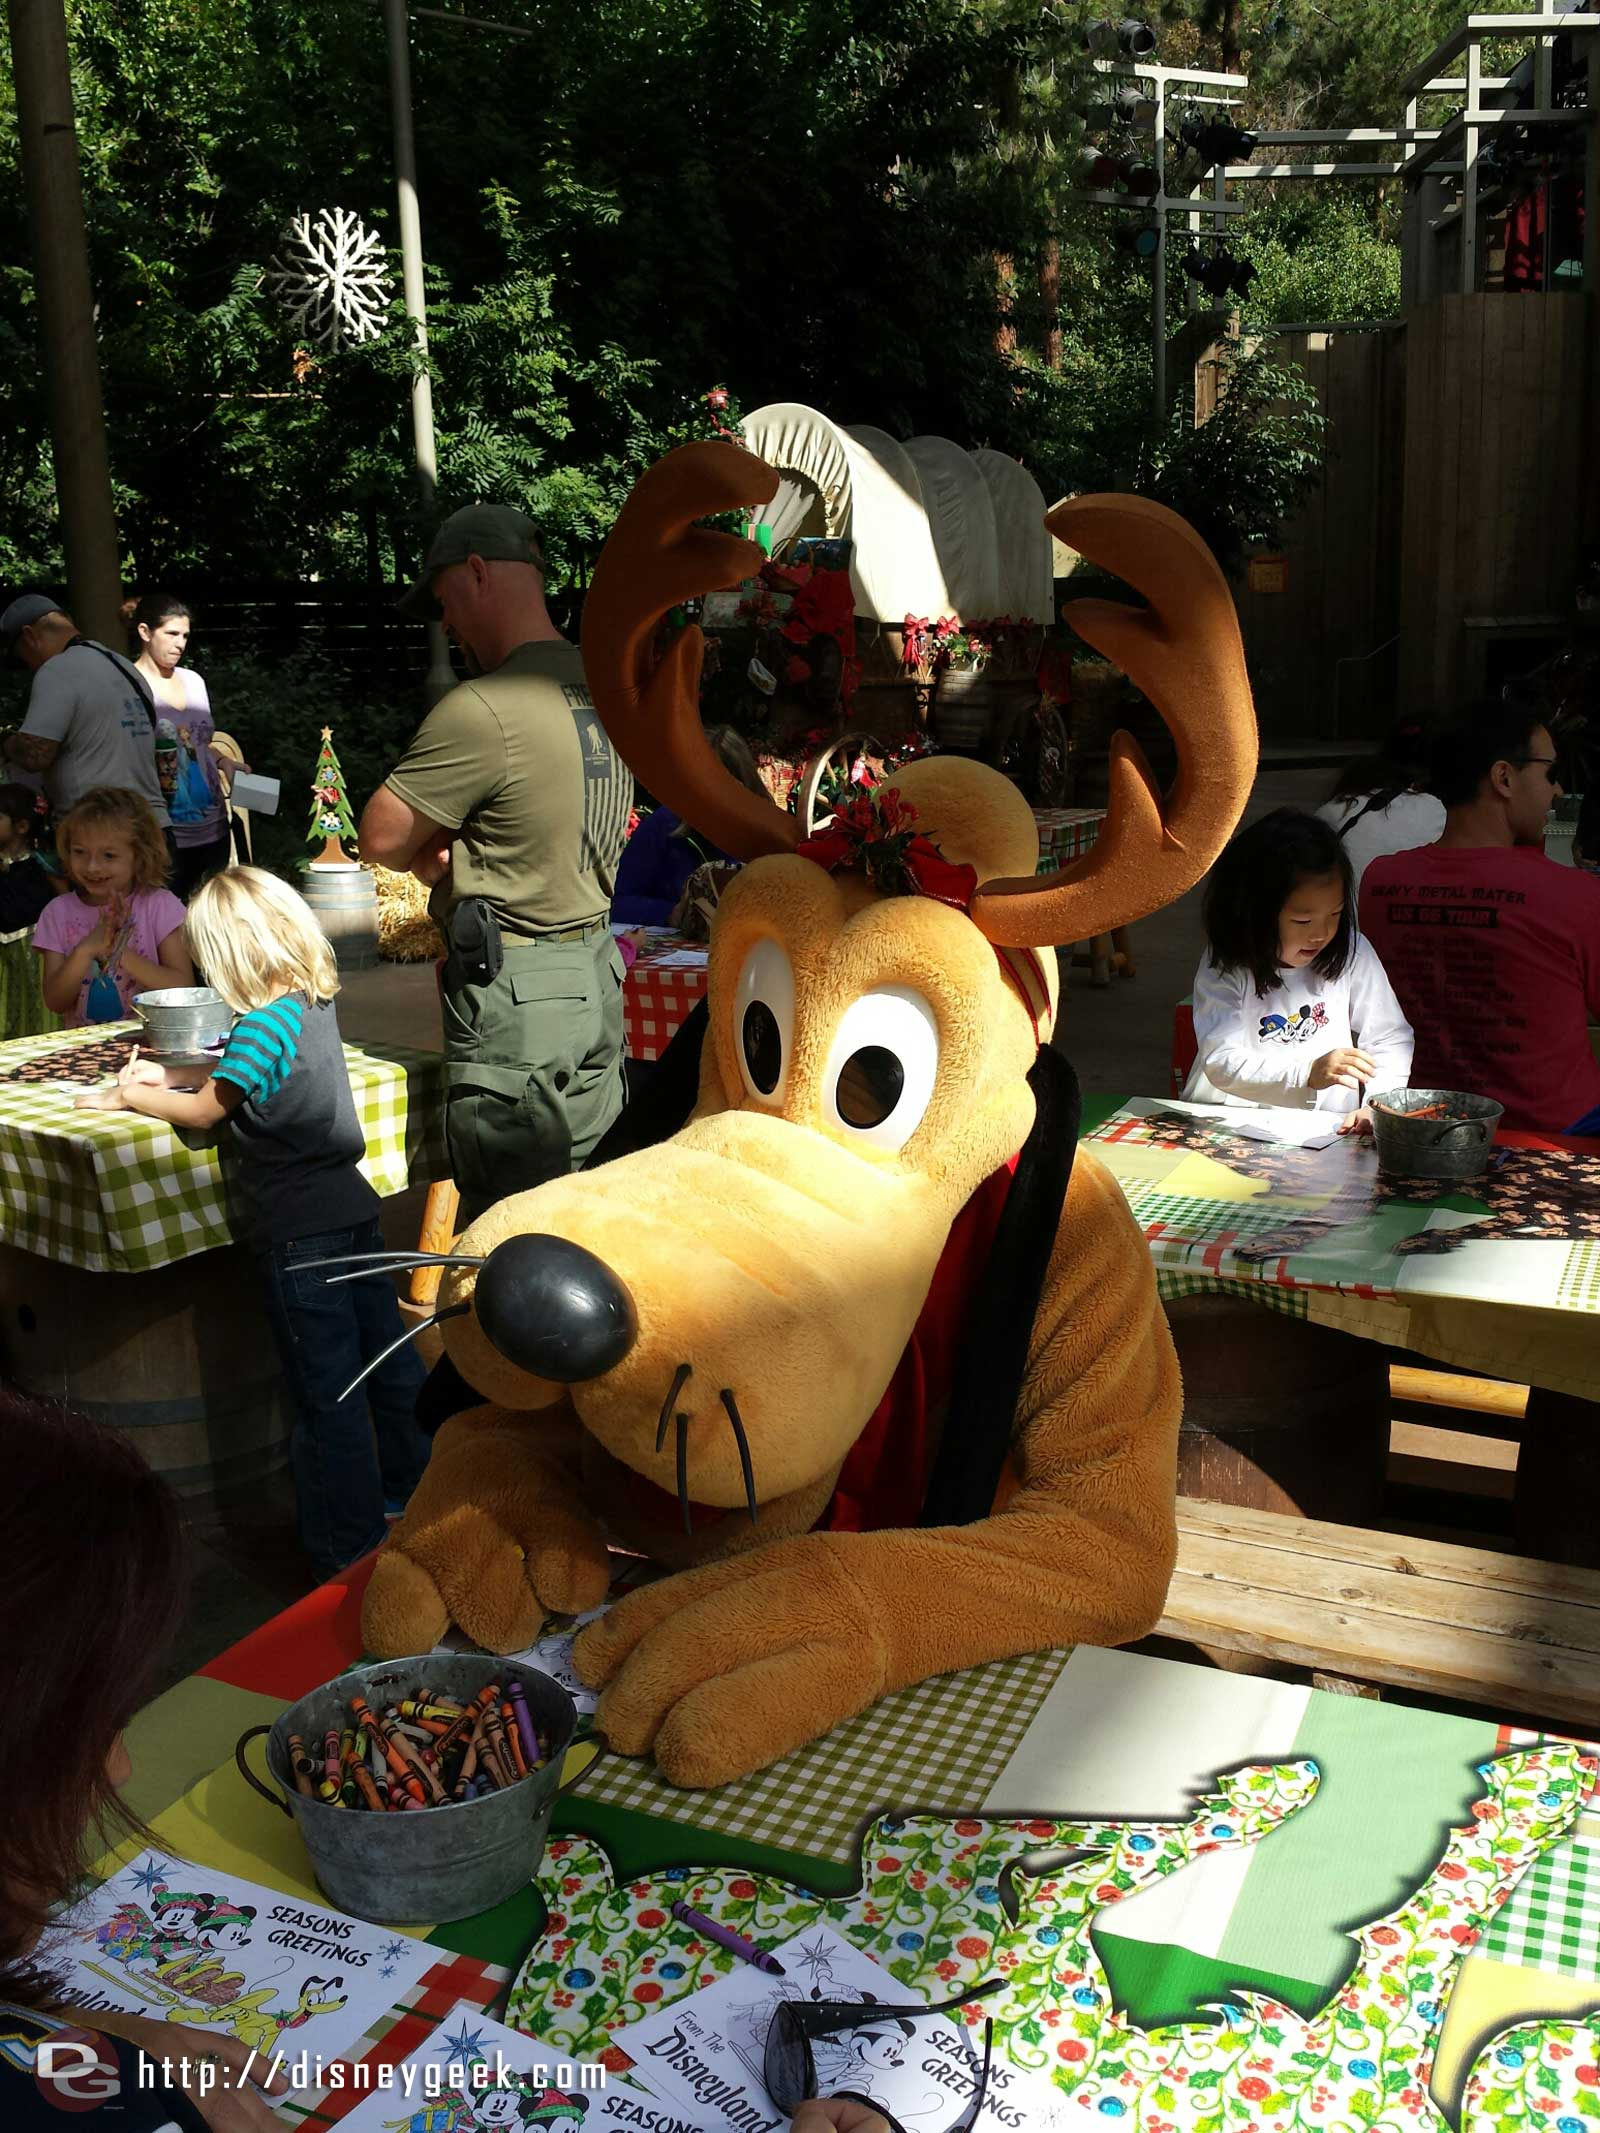 Reindeer Pluto coloring at the Jingle Jangle Jamboree #Disneyland